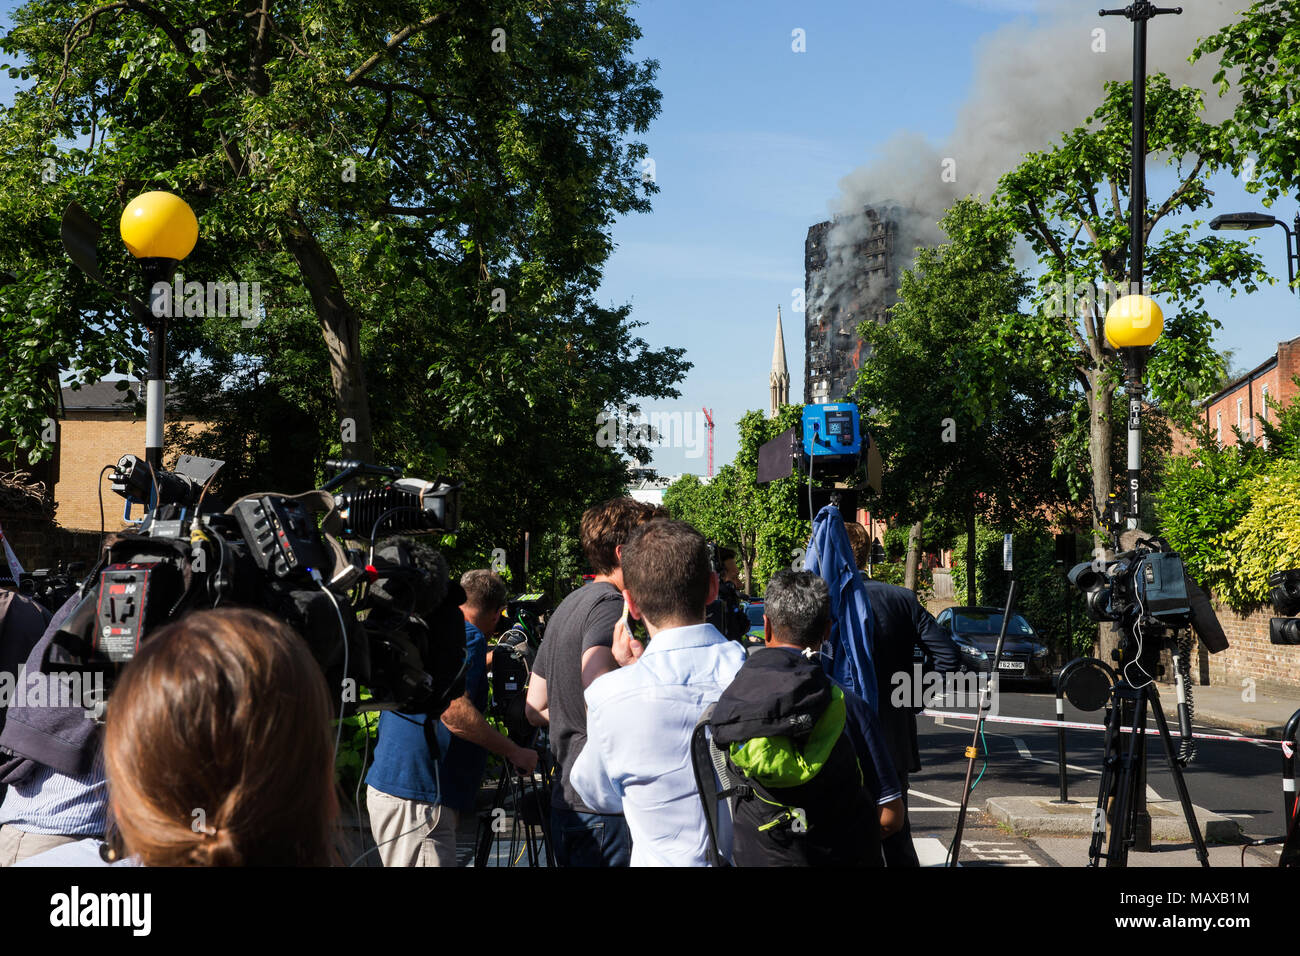 Press crews at the Grenfell Tower fire on 14 June 2017 in North Kensington, Royal Borough of Kensington and Chelsea. Stock Photo